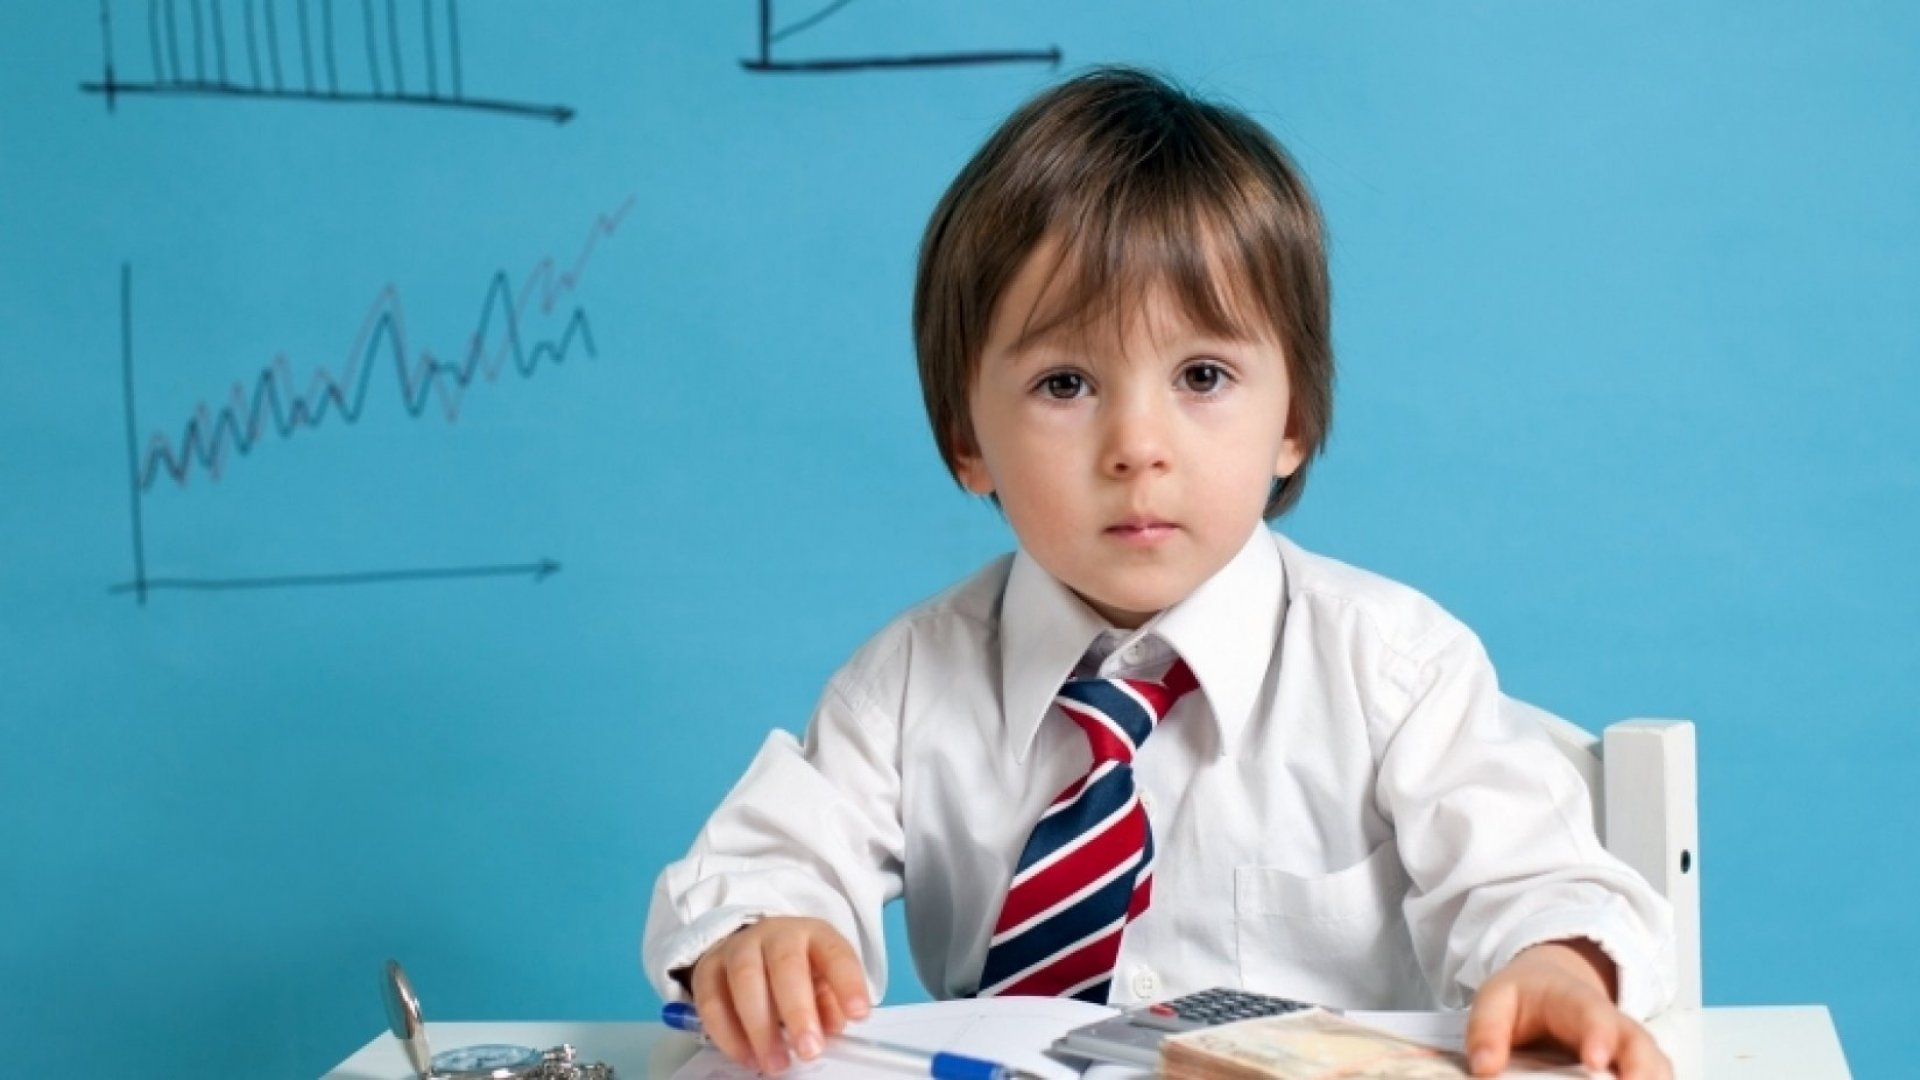 5 Tips for Managing Your Kids At Work Without Treating Them Like Children